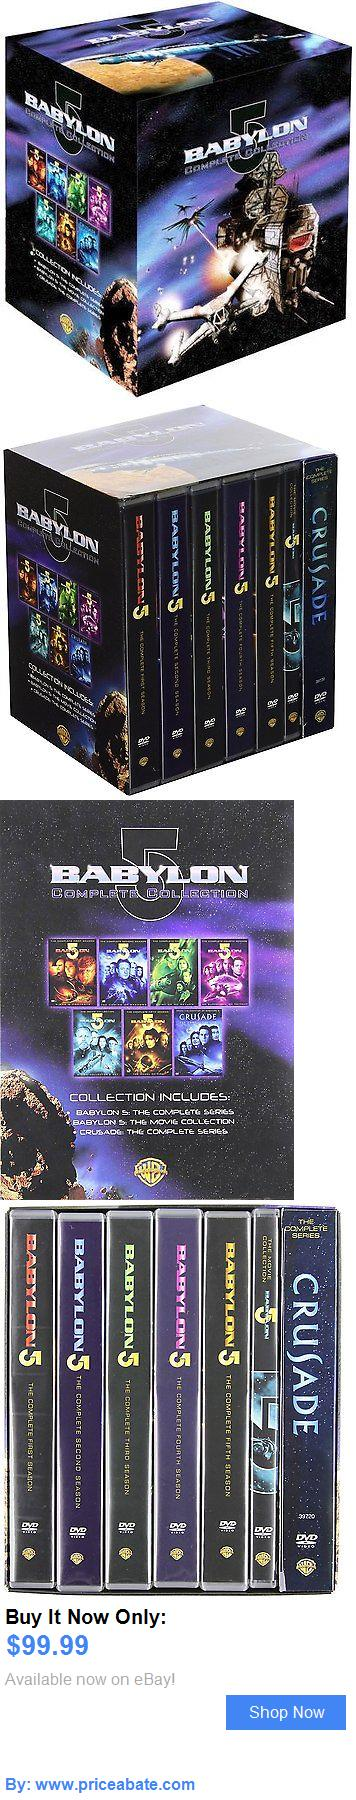 cds / dvds / vhs: Babylon 5: Complete Series And Movie Collection And Crusade Series (Dvd Box Set) New BUY IT NOW ONLY: $99.99 #priceabatecdsdvdsvhs OR #priceabate